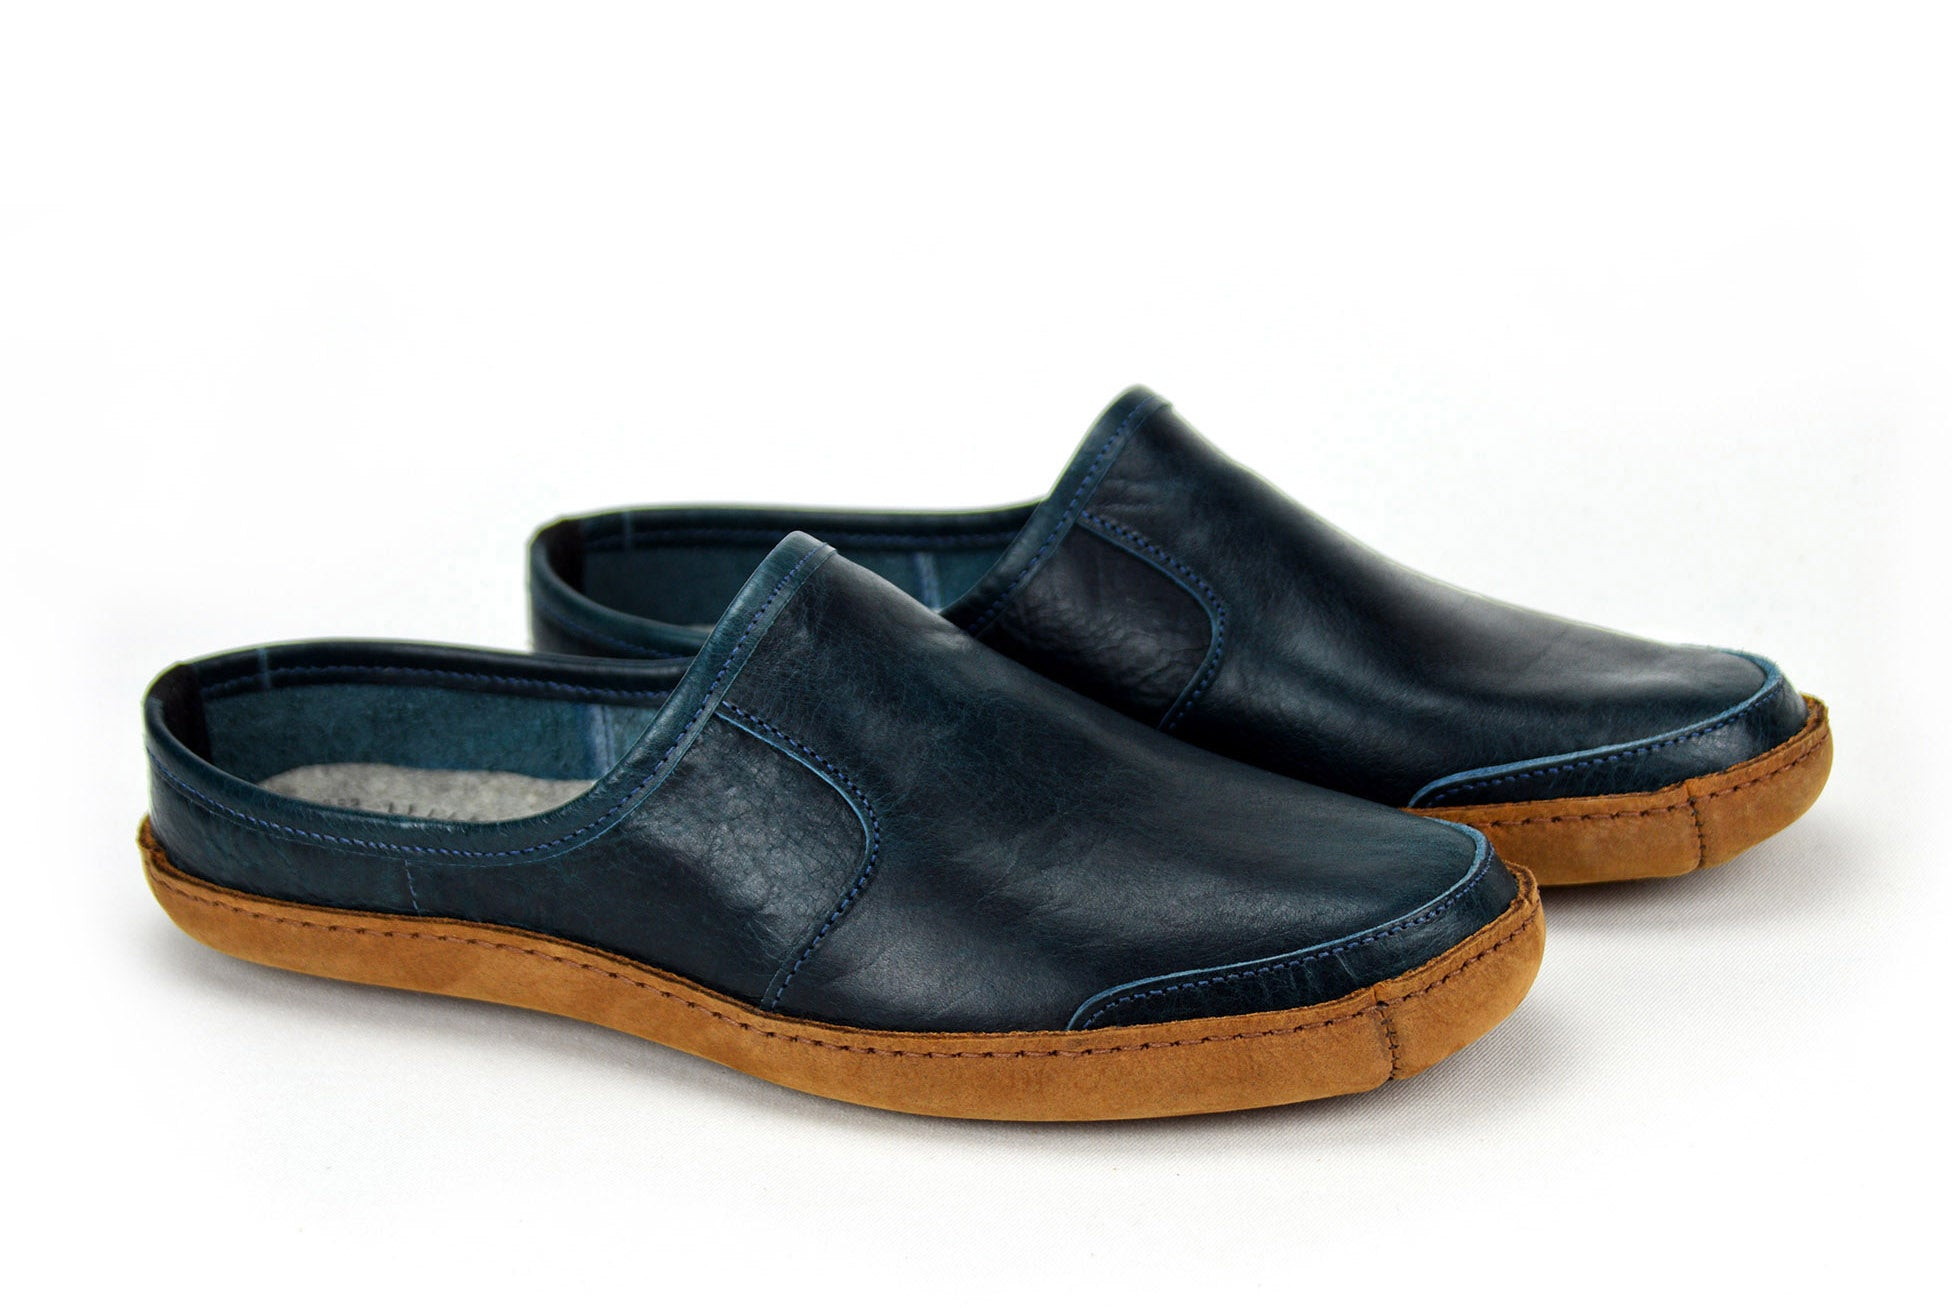 Vermont House Shoes: Mule